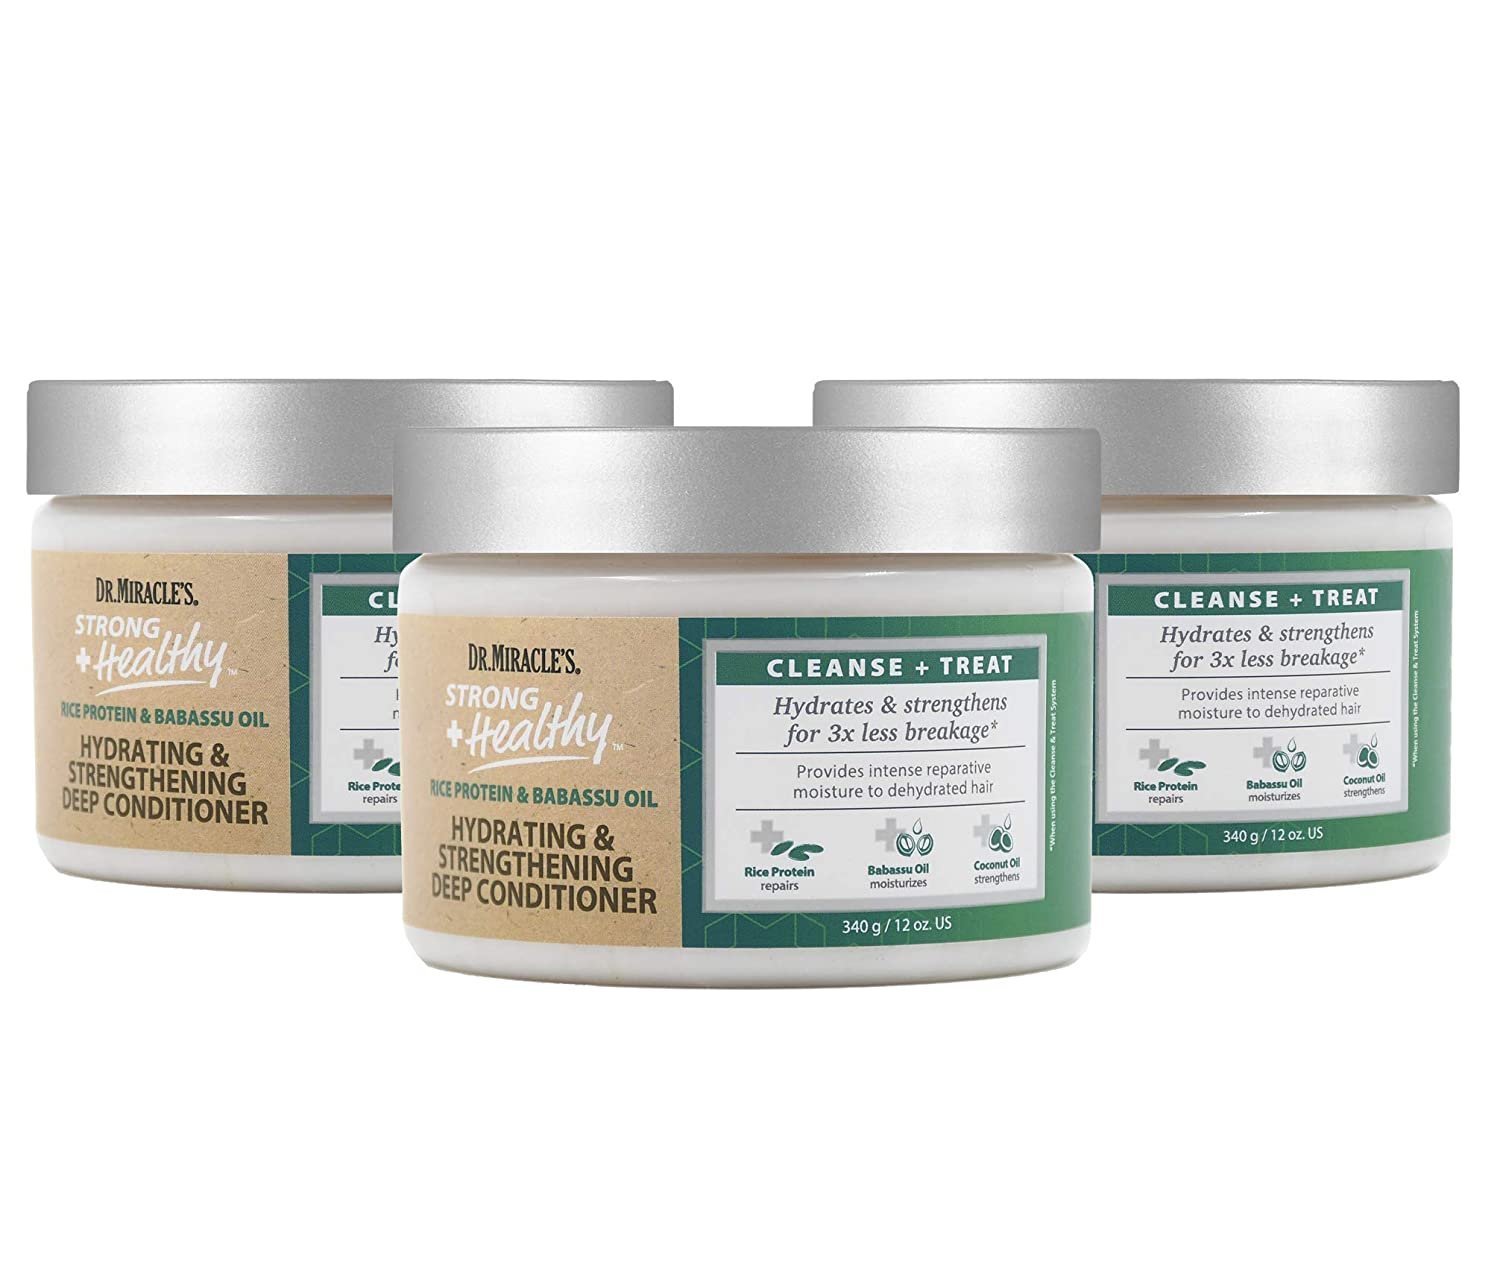 Dr. Miracle's Strong & Healthy Hydrating & Strengthening Deep Conditioner (3 Pack). Contains Coconut Oil to provide intense moisture and repair damaged hair.